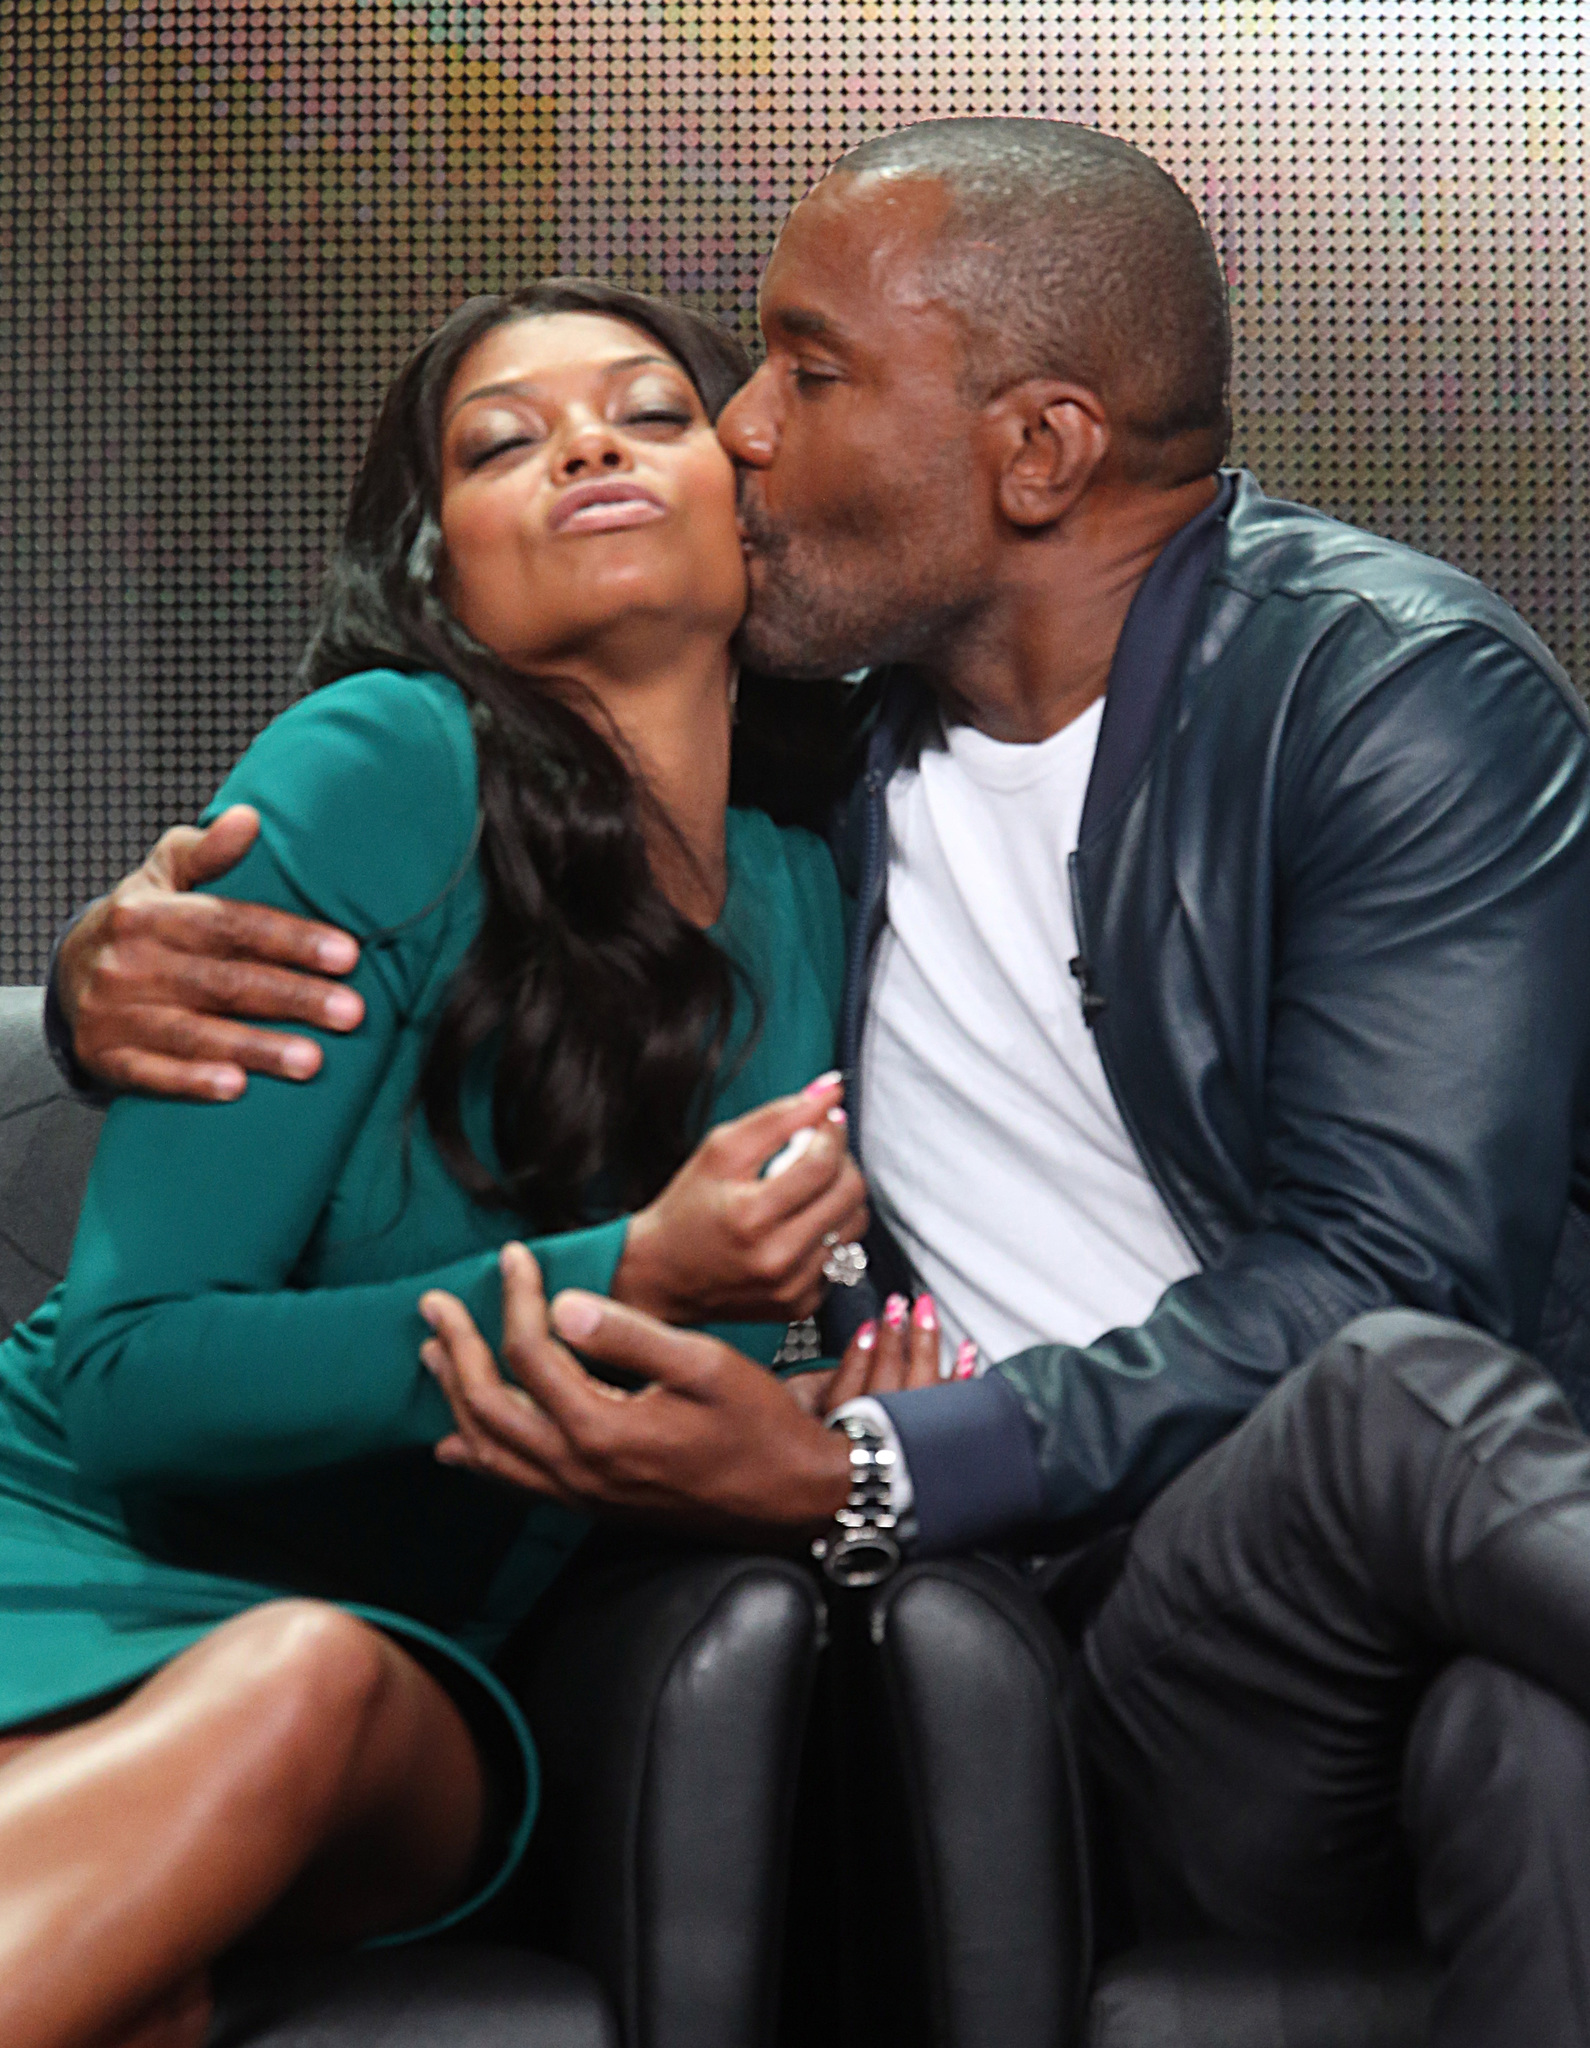 Lee Daniels and Taraji P. Henson at an event for Empire (2015)